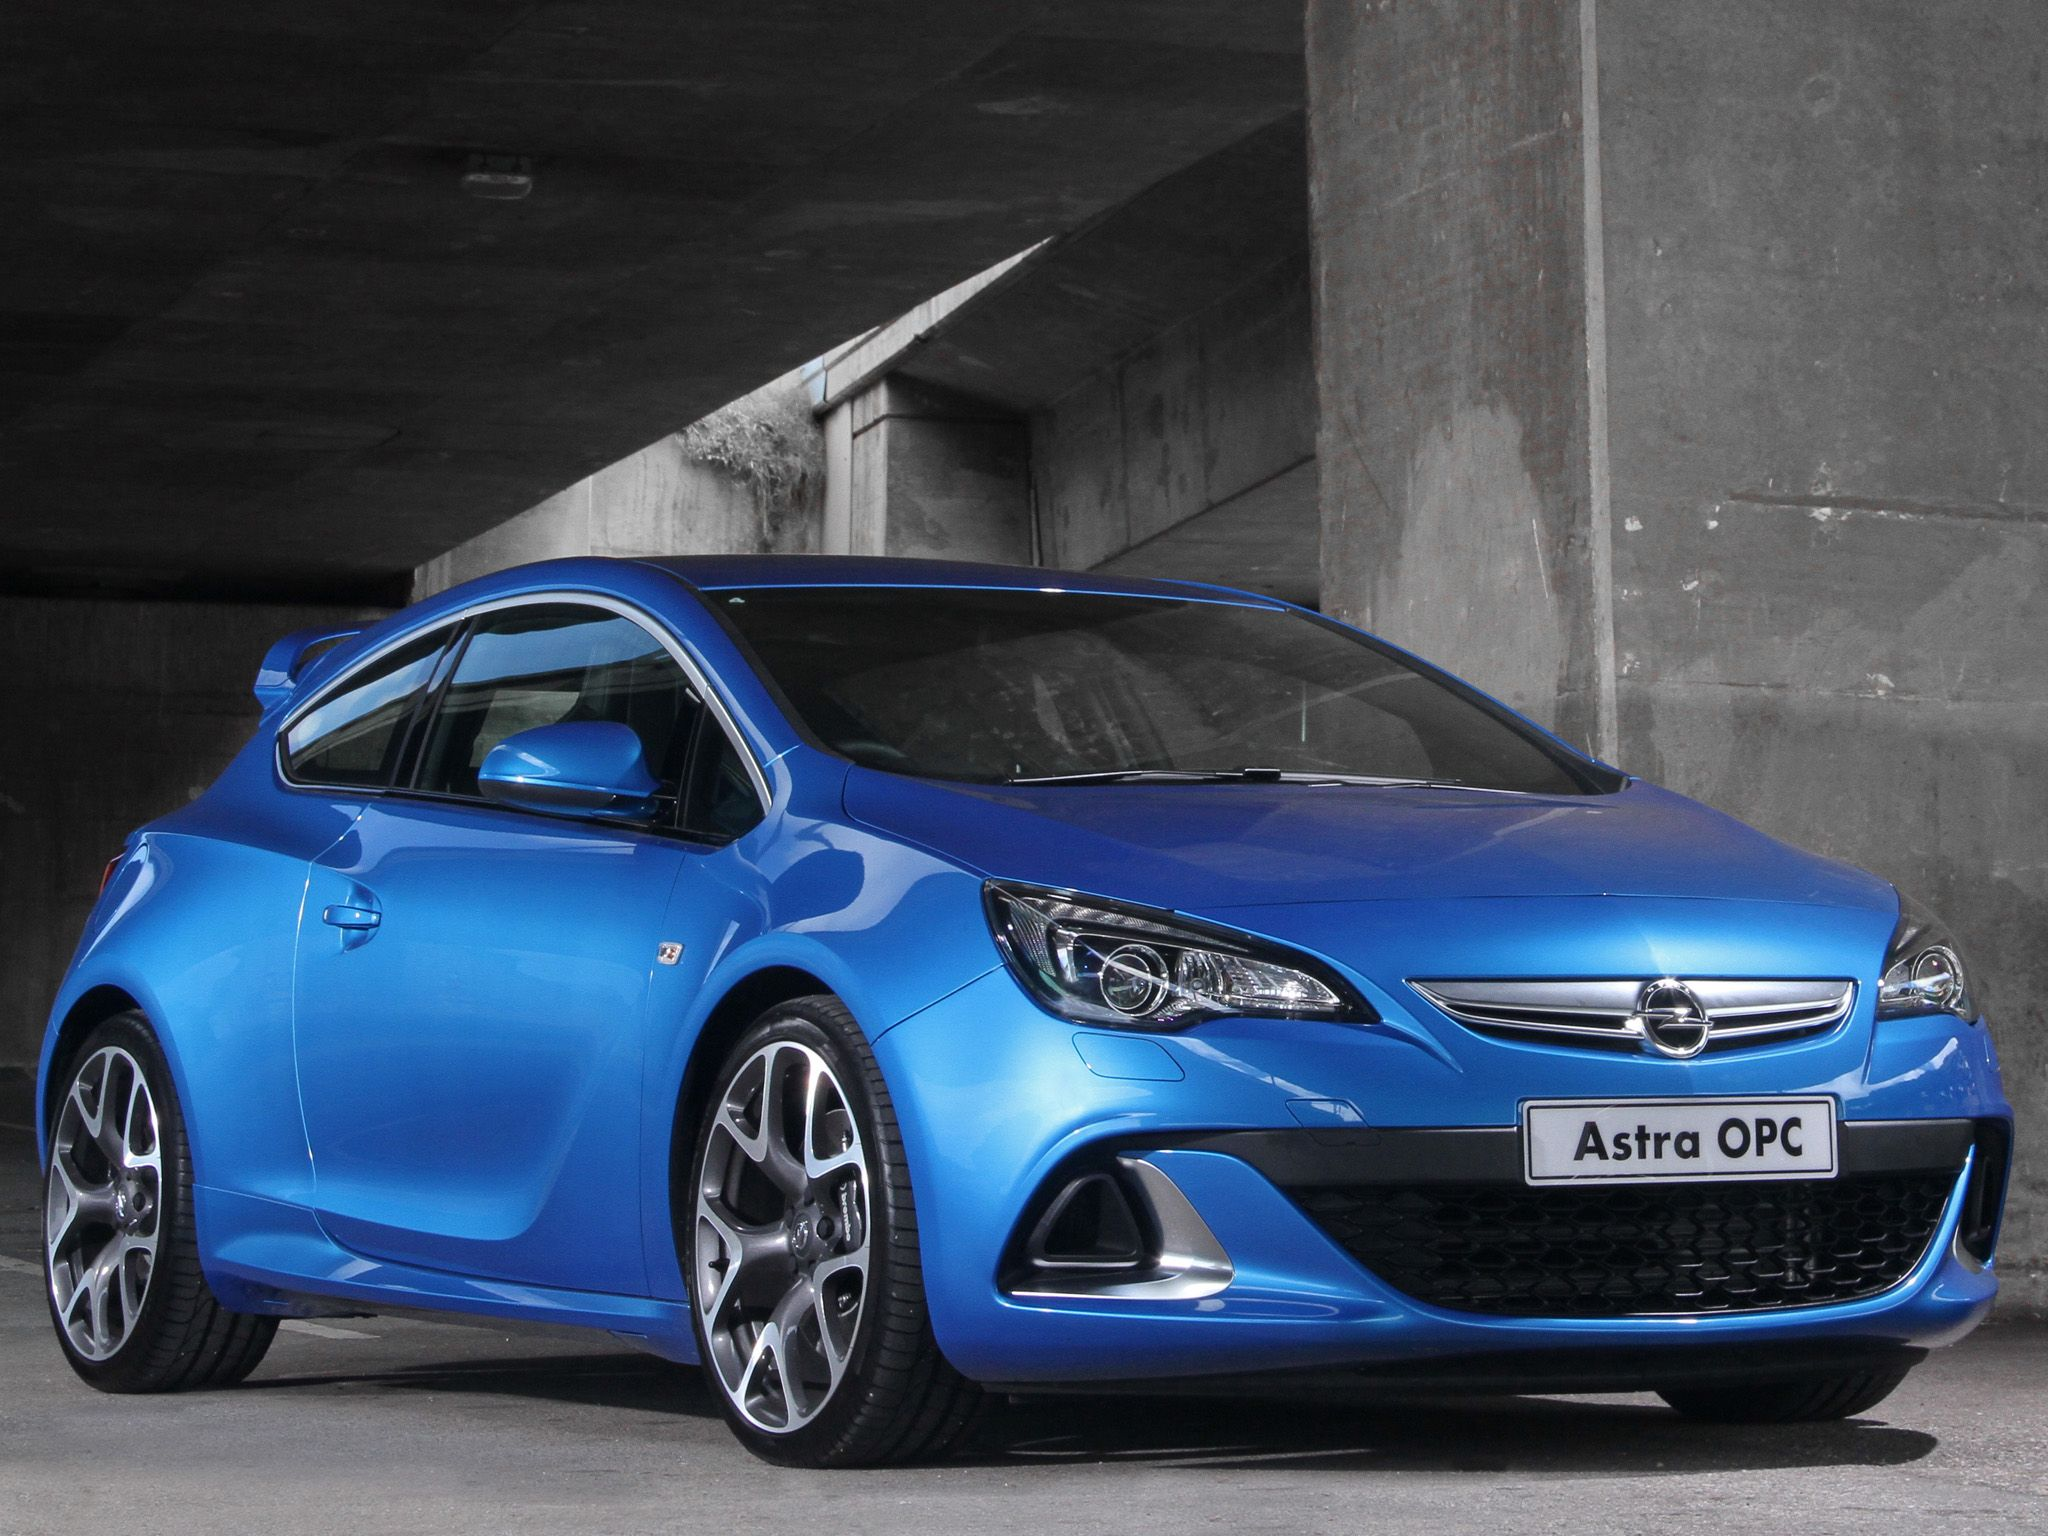 2018 opel astra opc redesign and release date with this engine capability this car should be able to accelerate from miles per hour in six secs